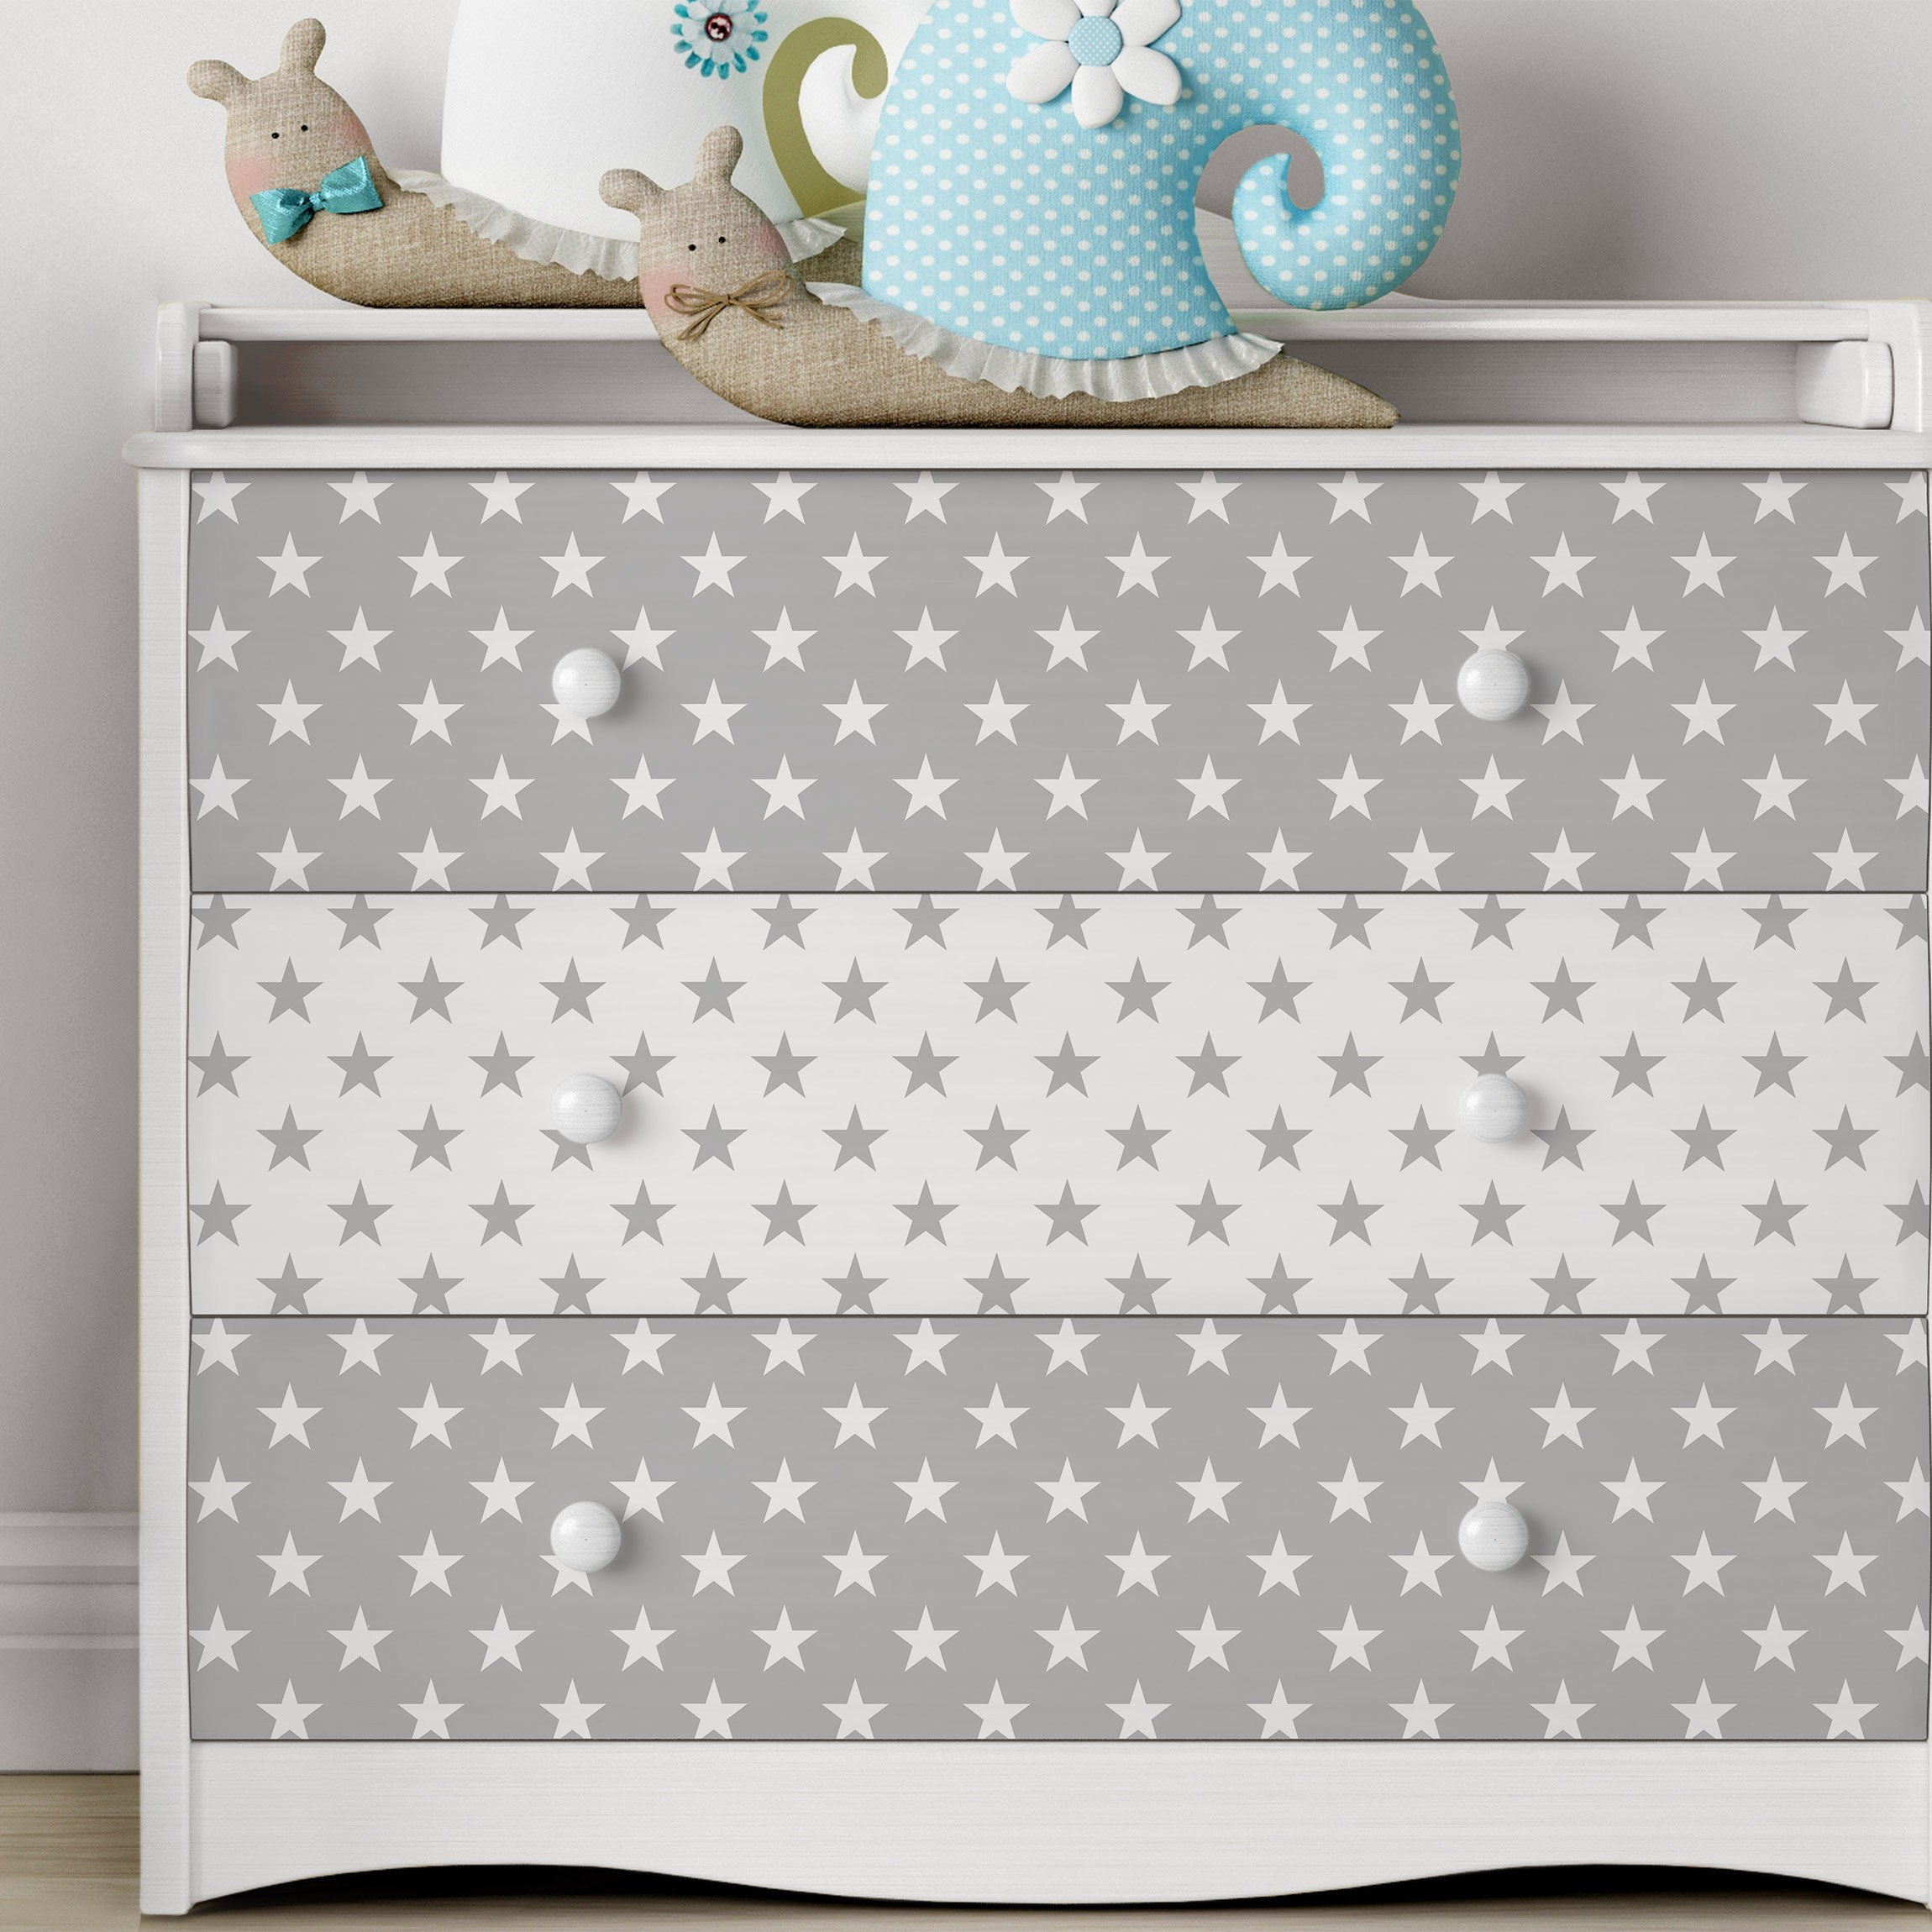 carta adesiva per mobili stars pattern set in grey and white